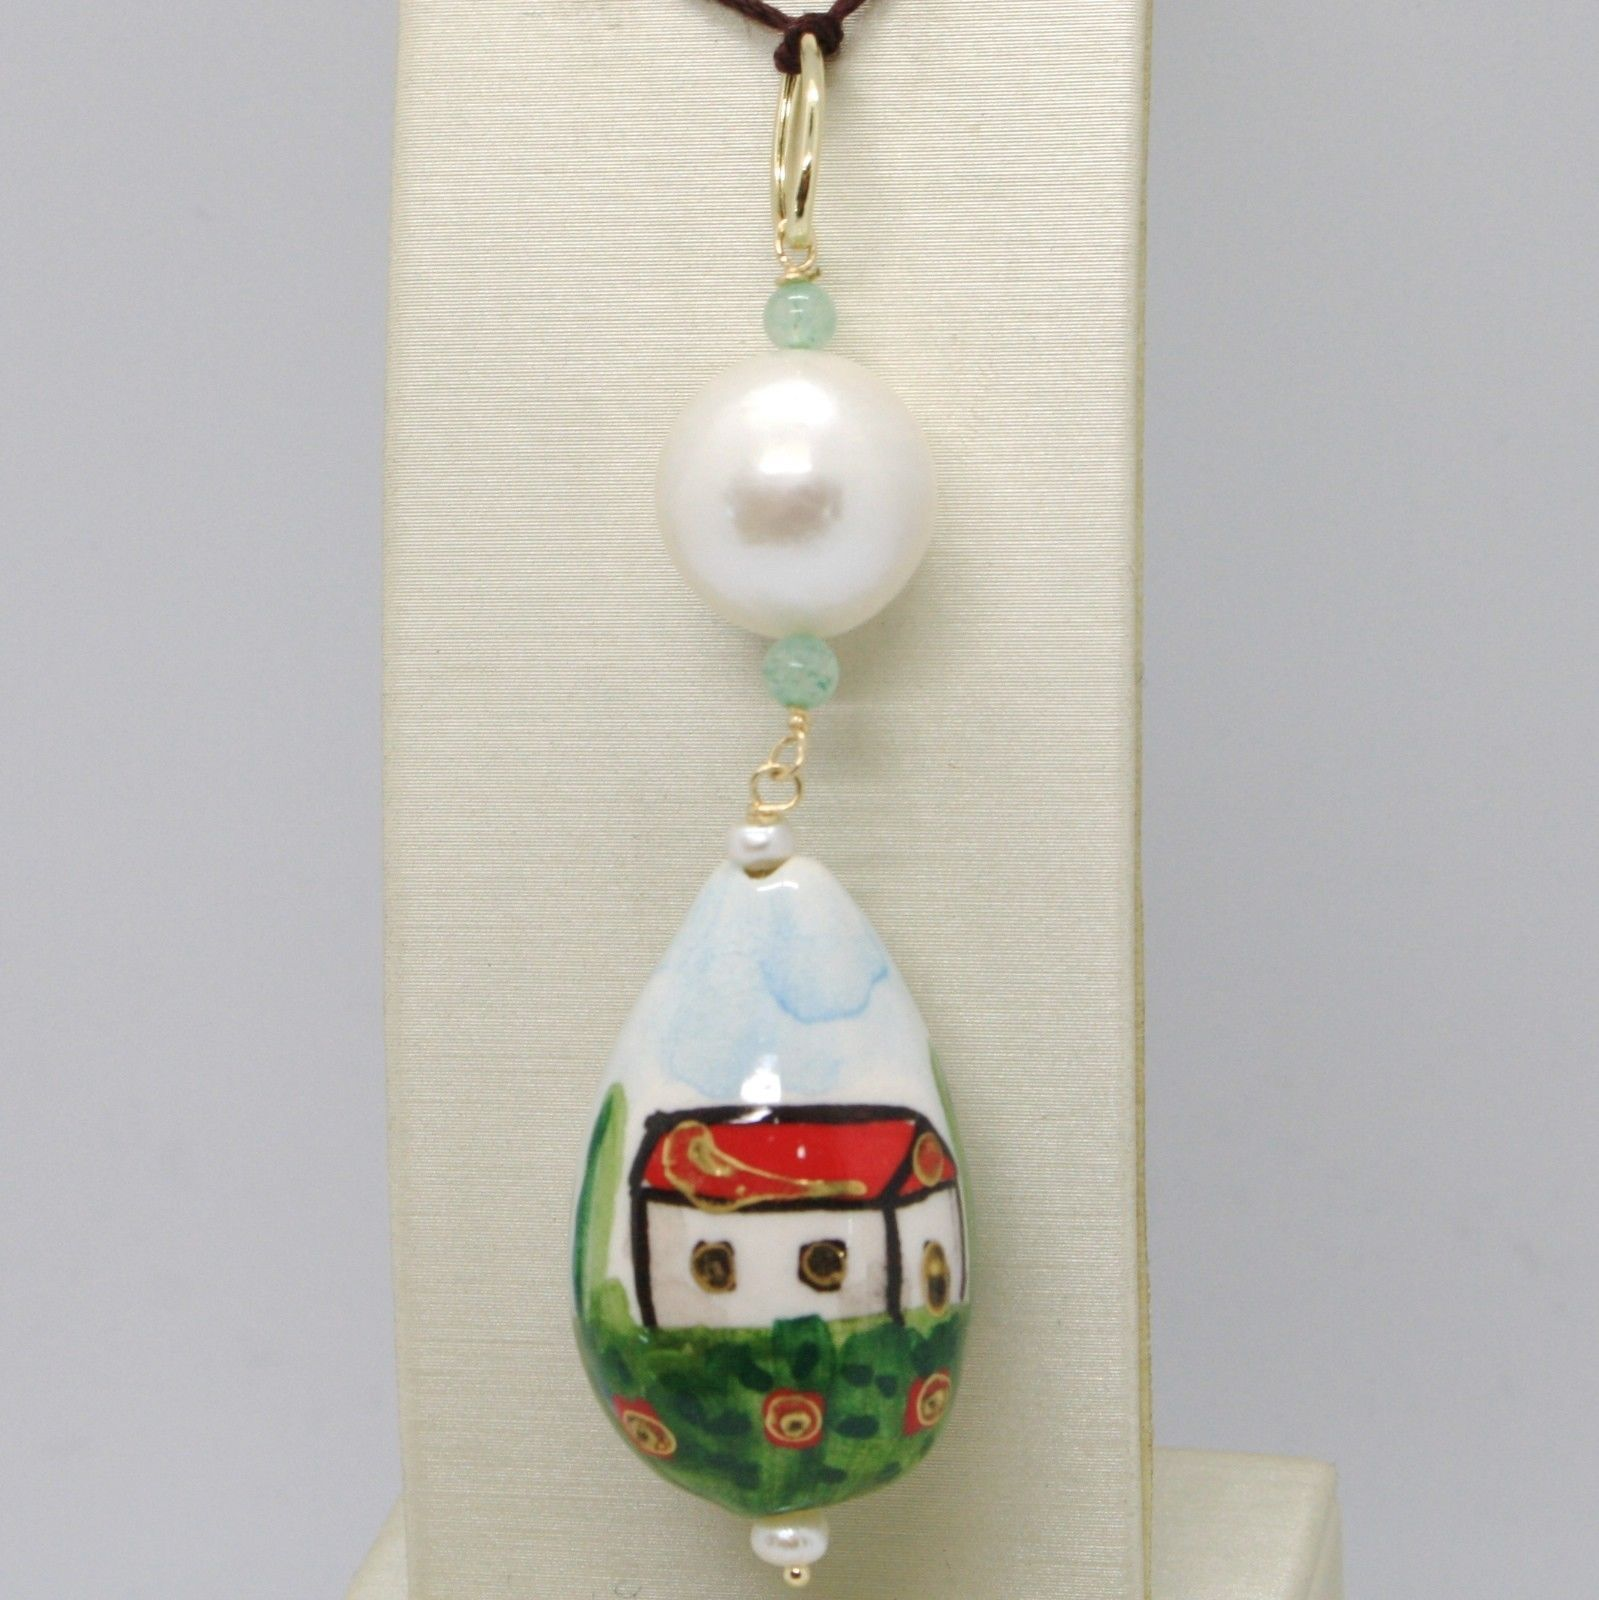 PENDANT YELLOW GOLD 18K 750 WITH PEARL AVENTURINE AND CERAMICS MADE IN ITALY